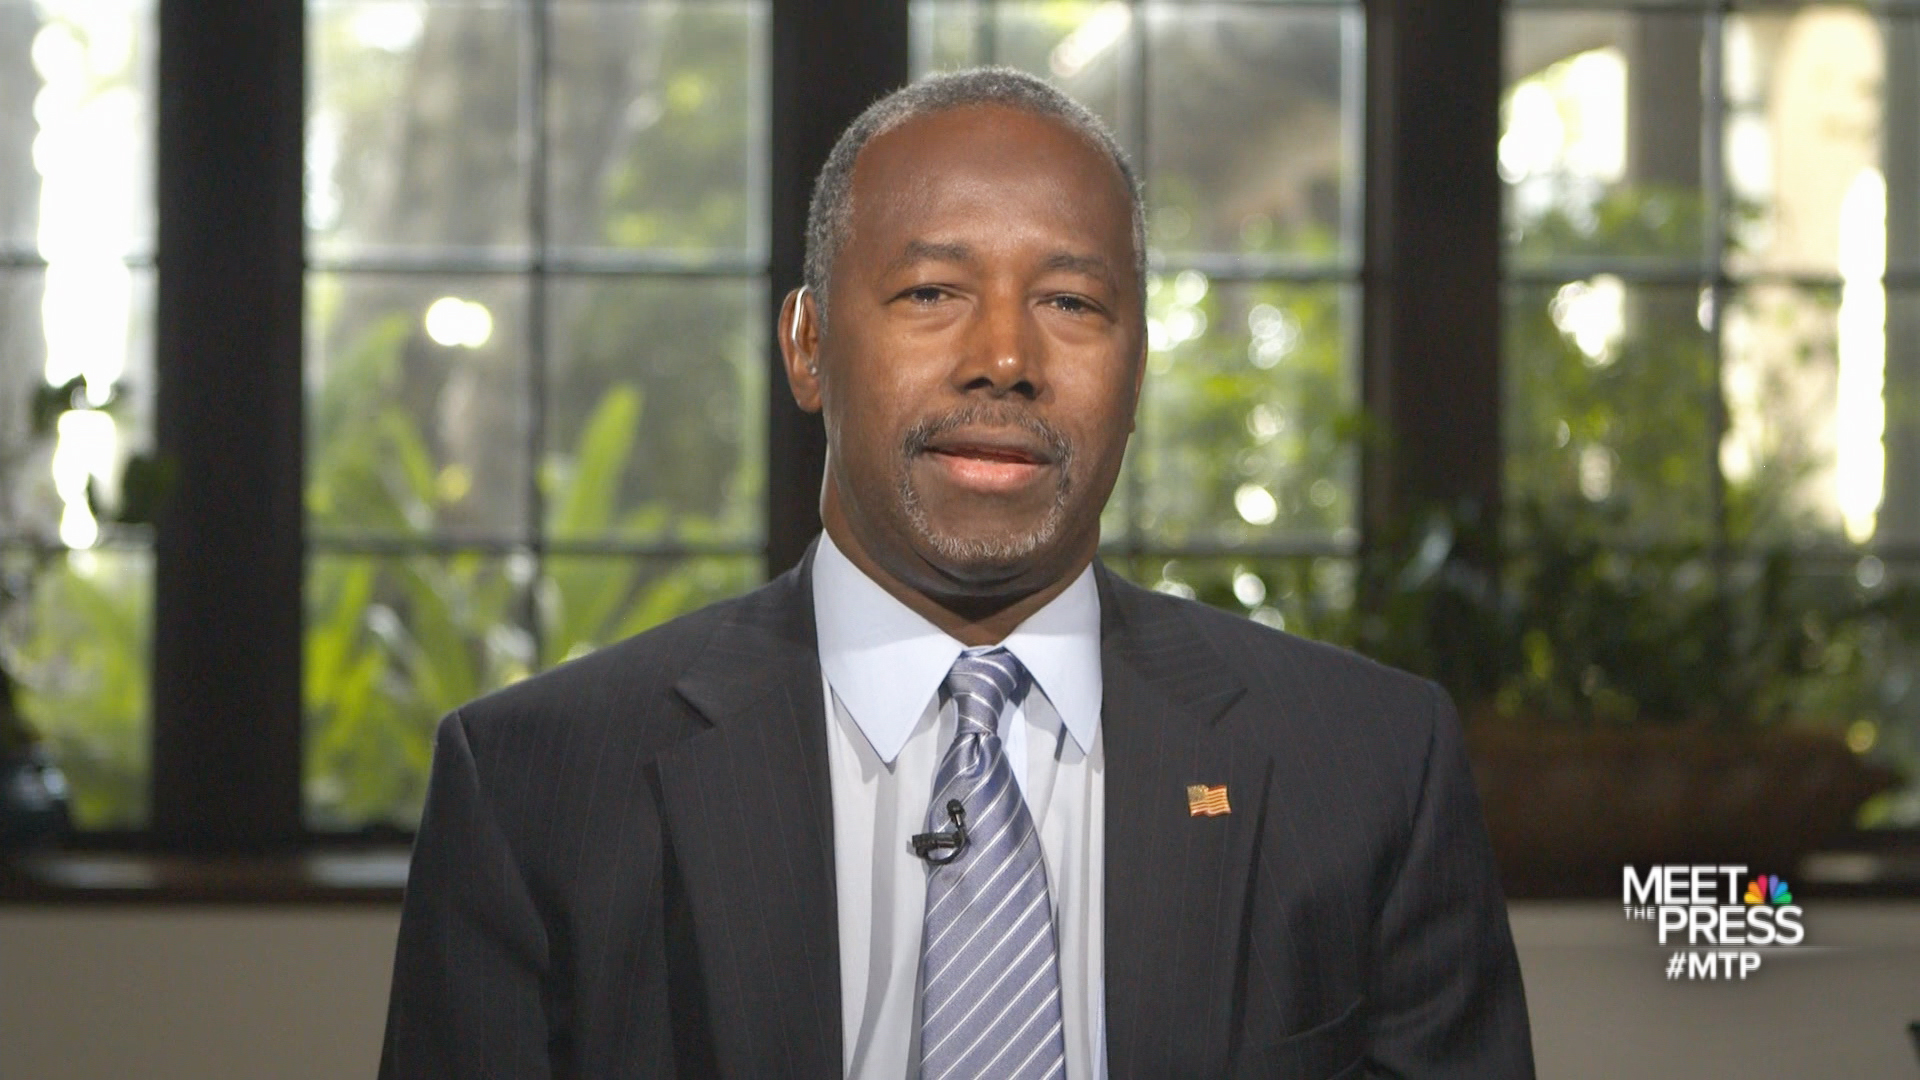 carson muslim single women Ben carson and the gop's foolish jihad against muslims carson's ill-informed views on muslim-americans have become the subjugation of women.